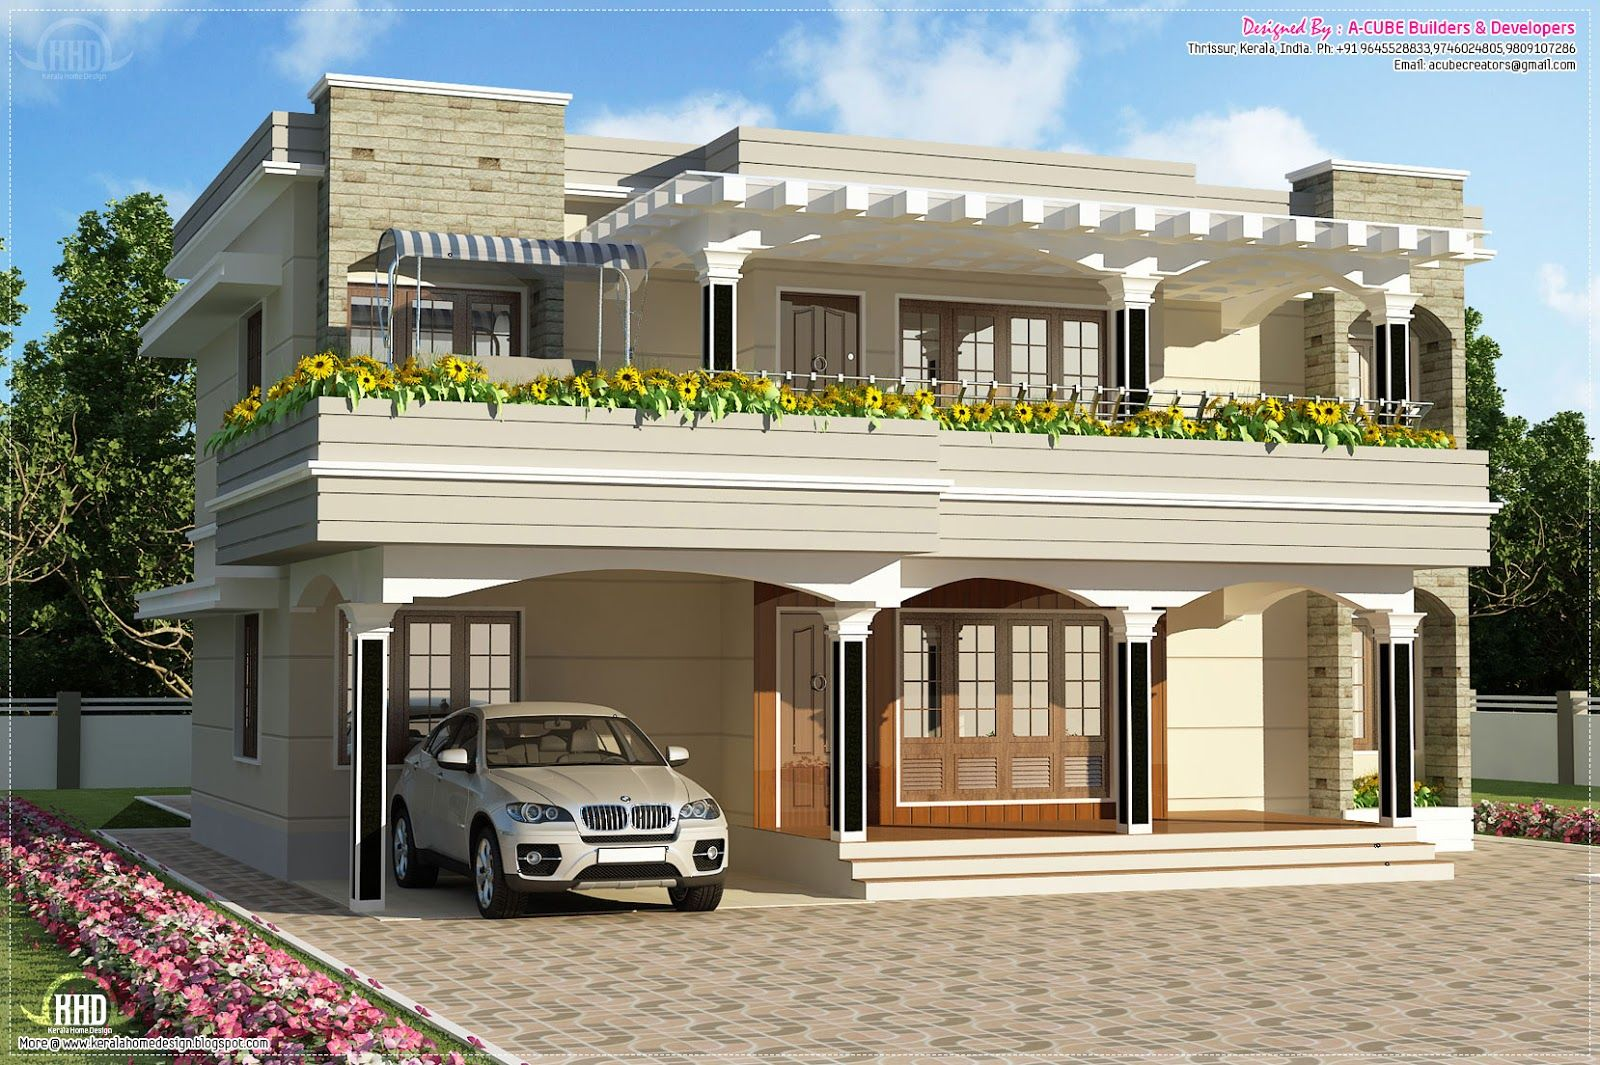 Front Elevation Pergola Design : Front porch pergola elevation design drawing coveragehd